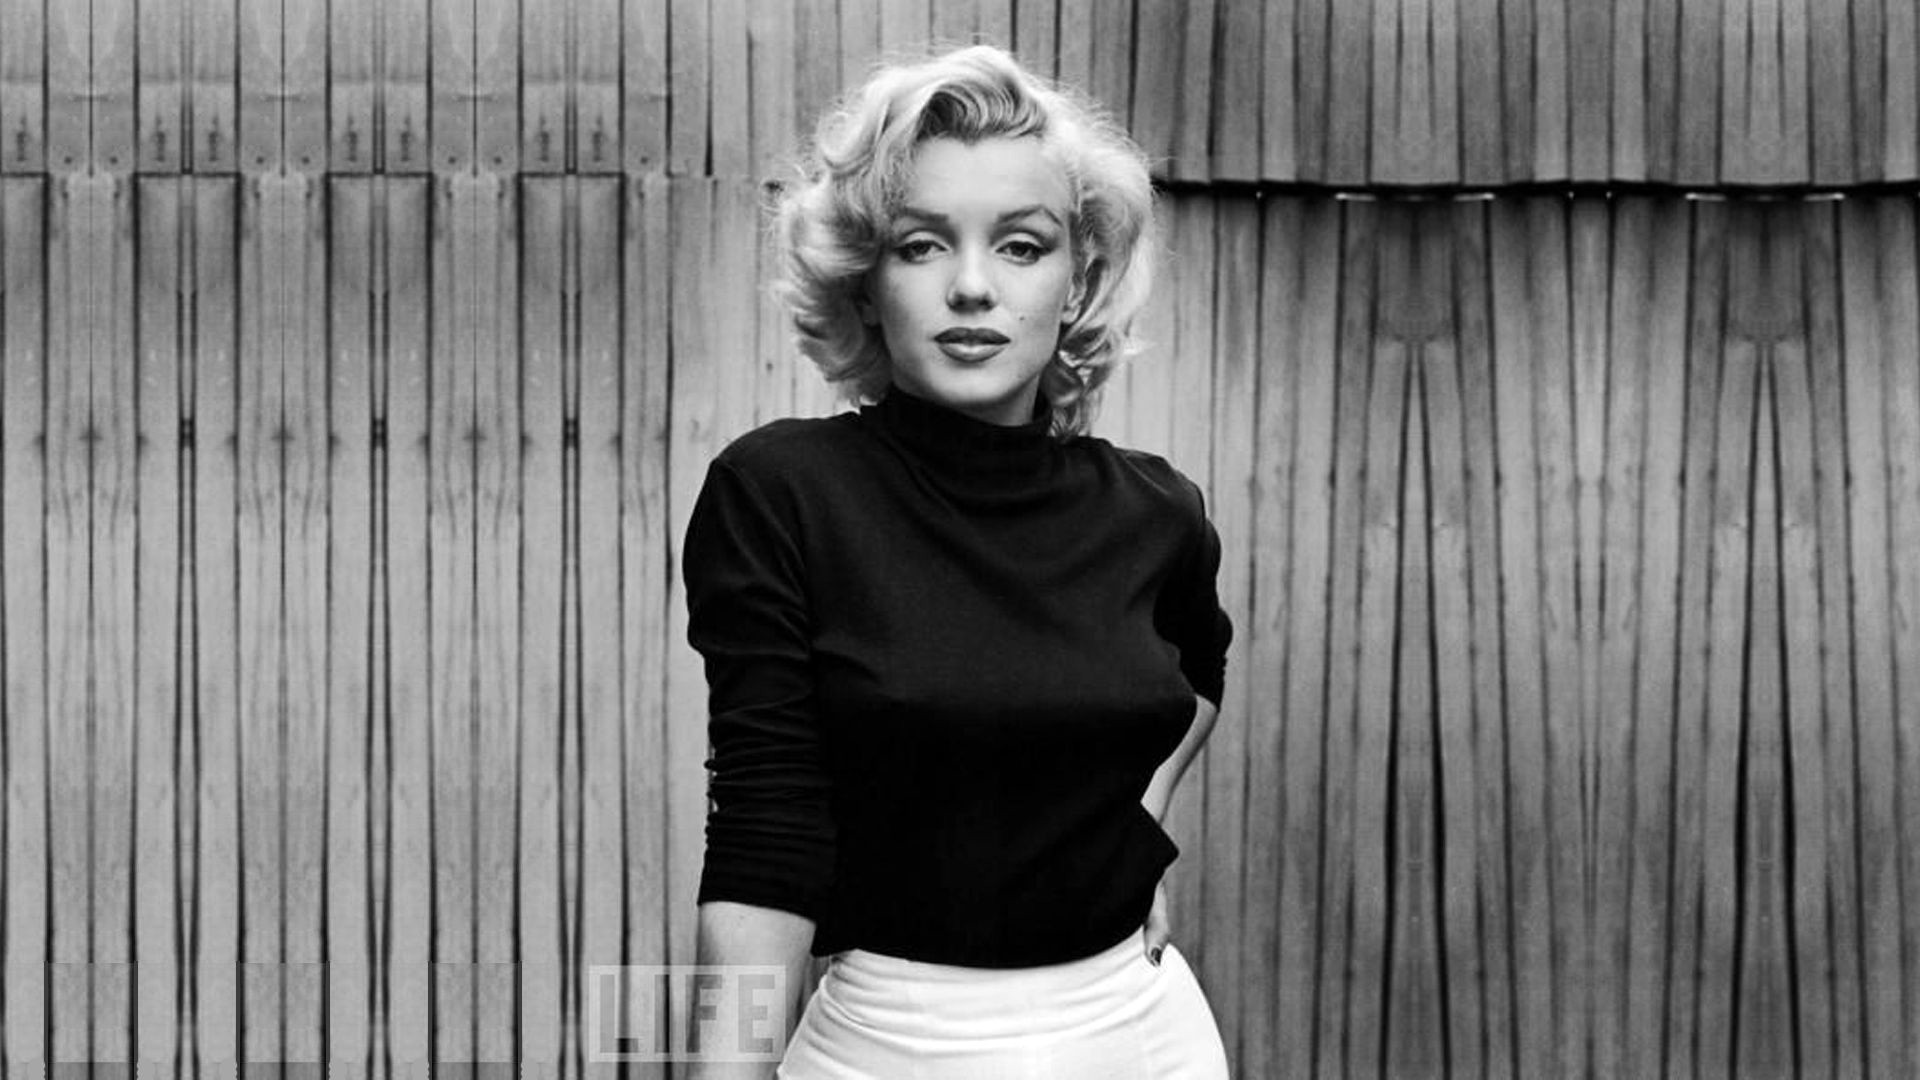 Citaten Marilyn Monroe Hd : Marilyn monroe a witch endnotes medium